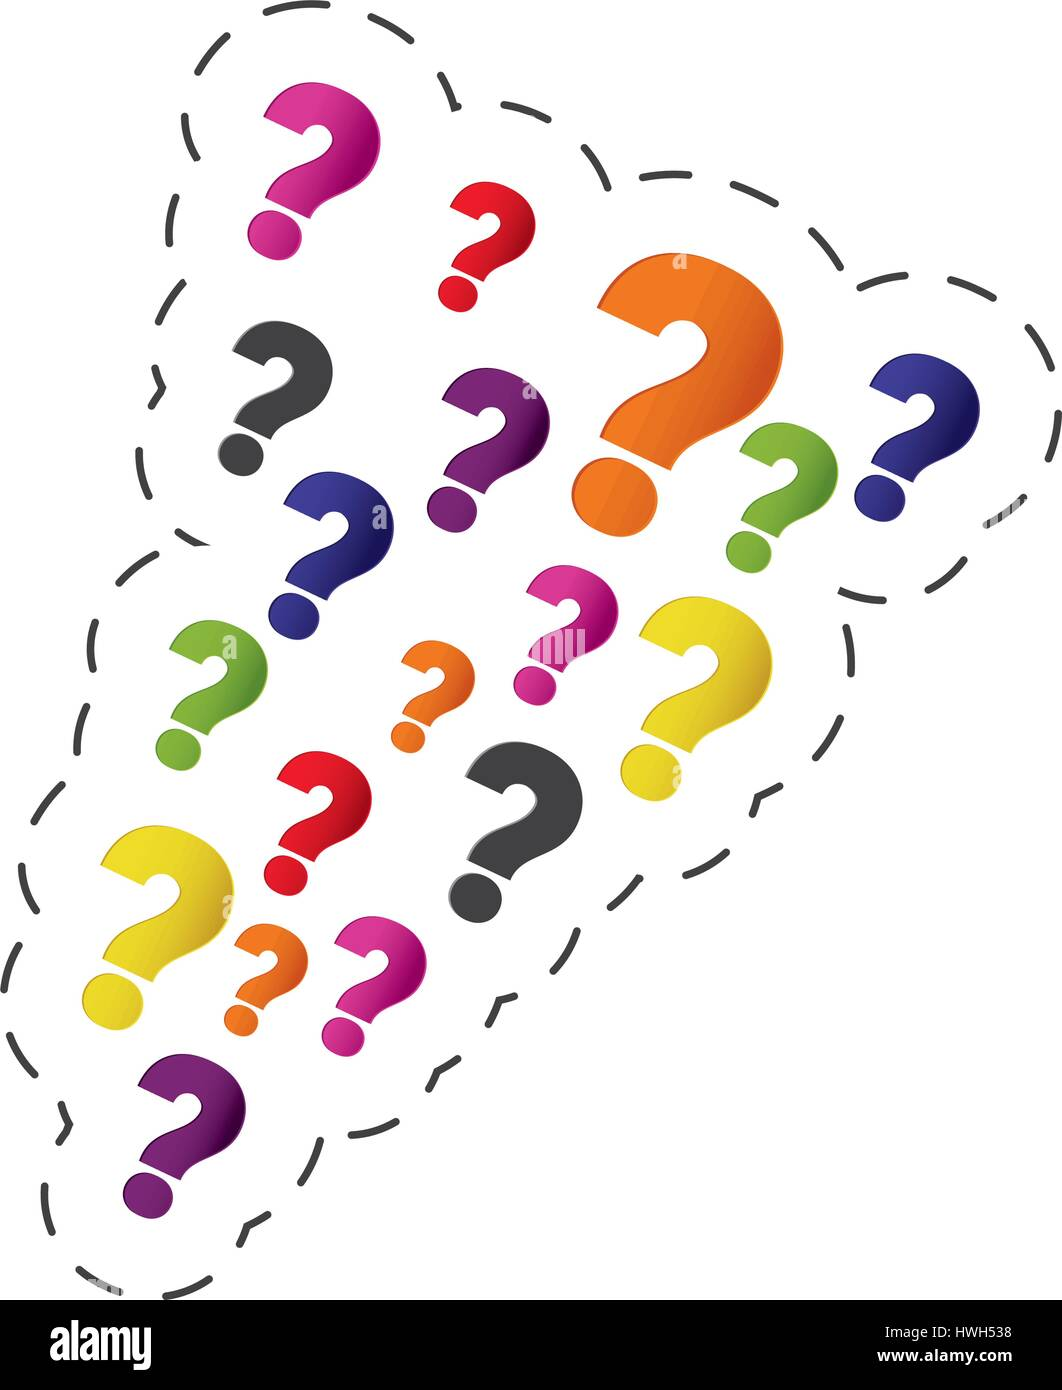 set question mark image - Stock Image